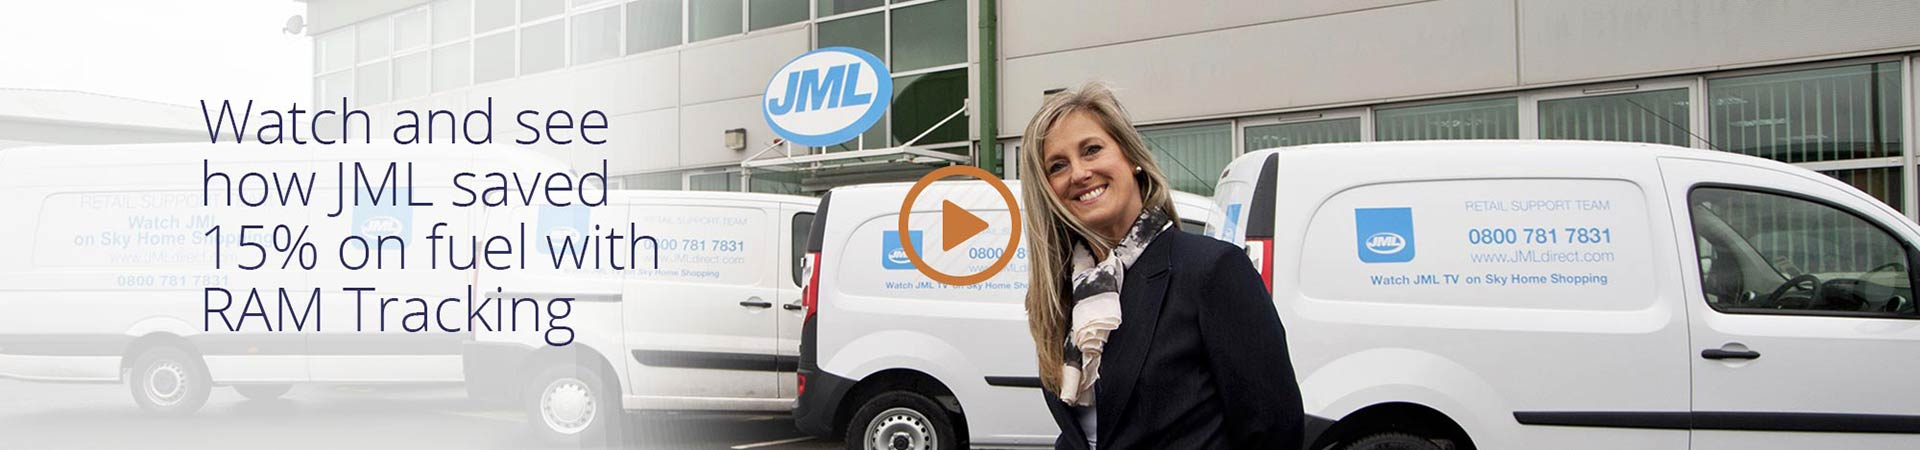 Watch and see how JML saved 15% of fuel with RAM Tracking